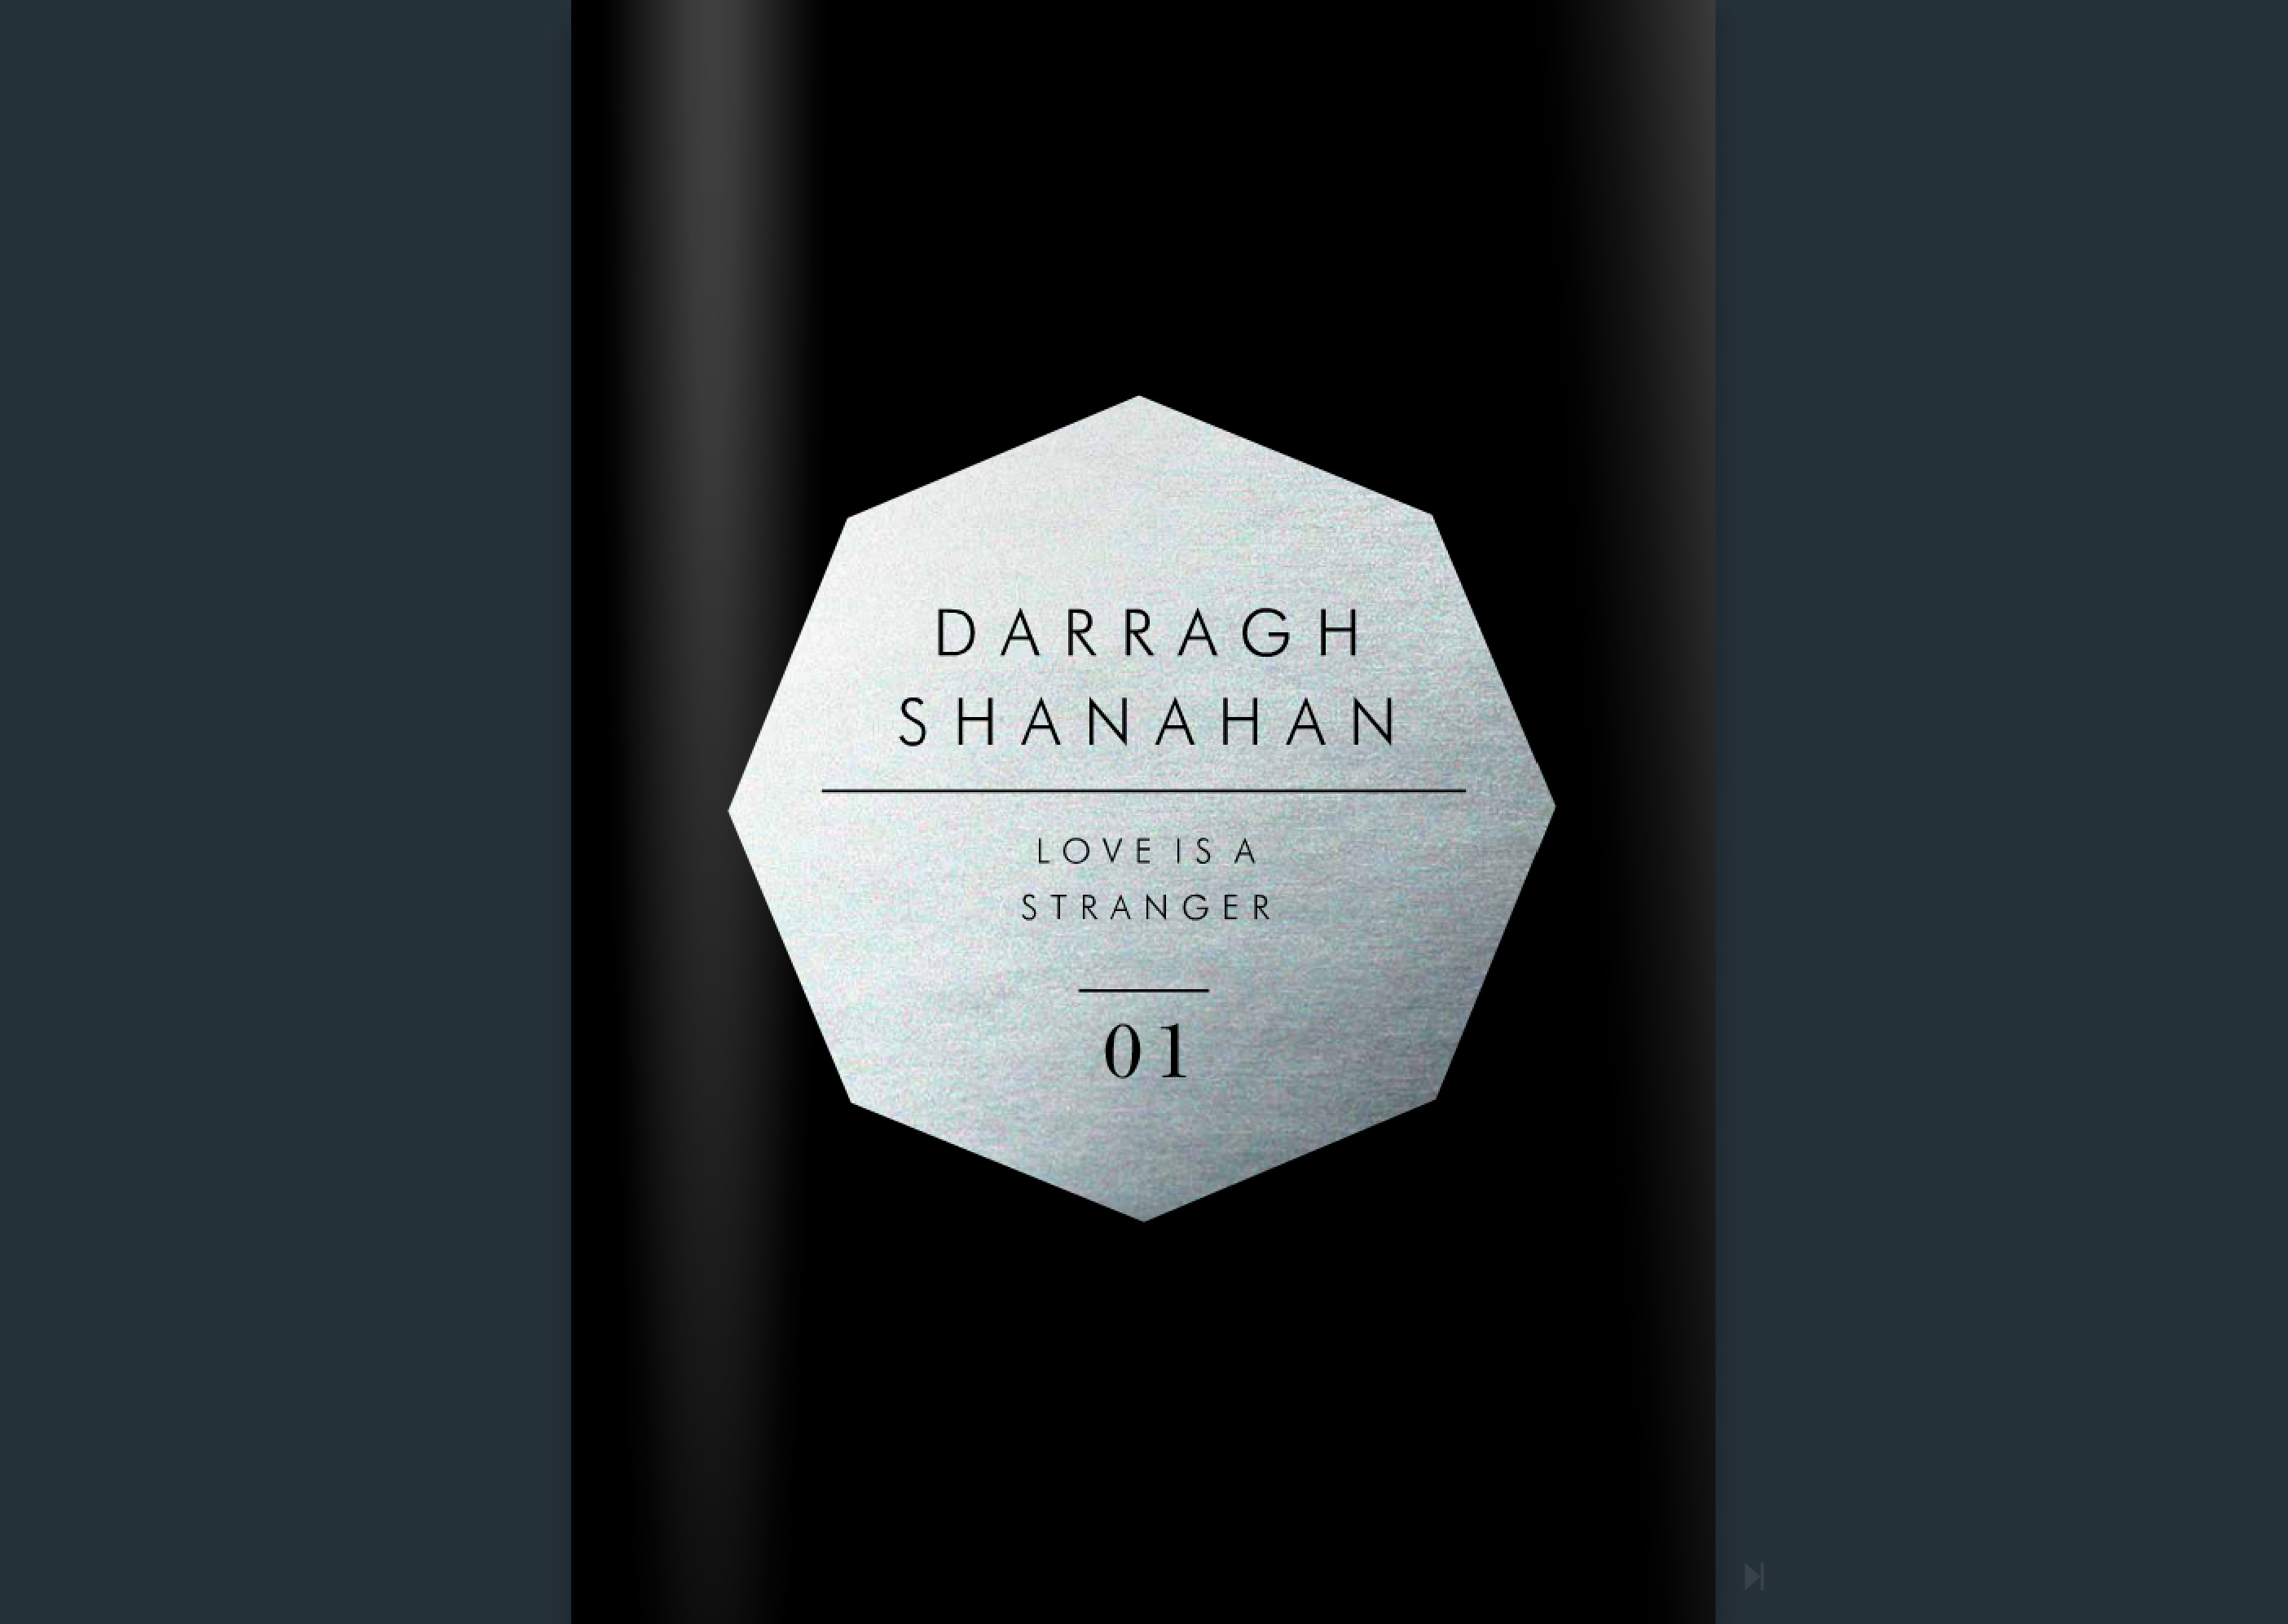 darragh singles The latest tweets from darragh macanthony  @dmac102 realy good turn out today darragh,  he'd single handily win britt the golden boot like he got jm his big.